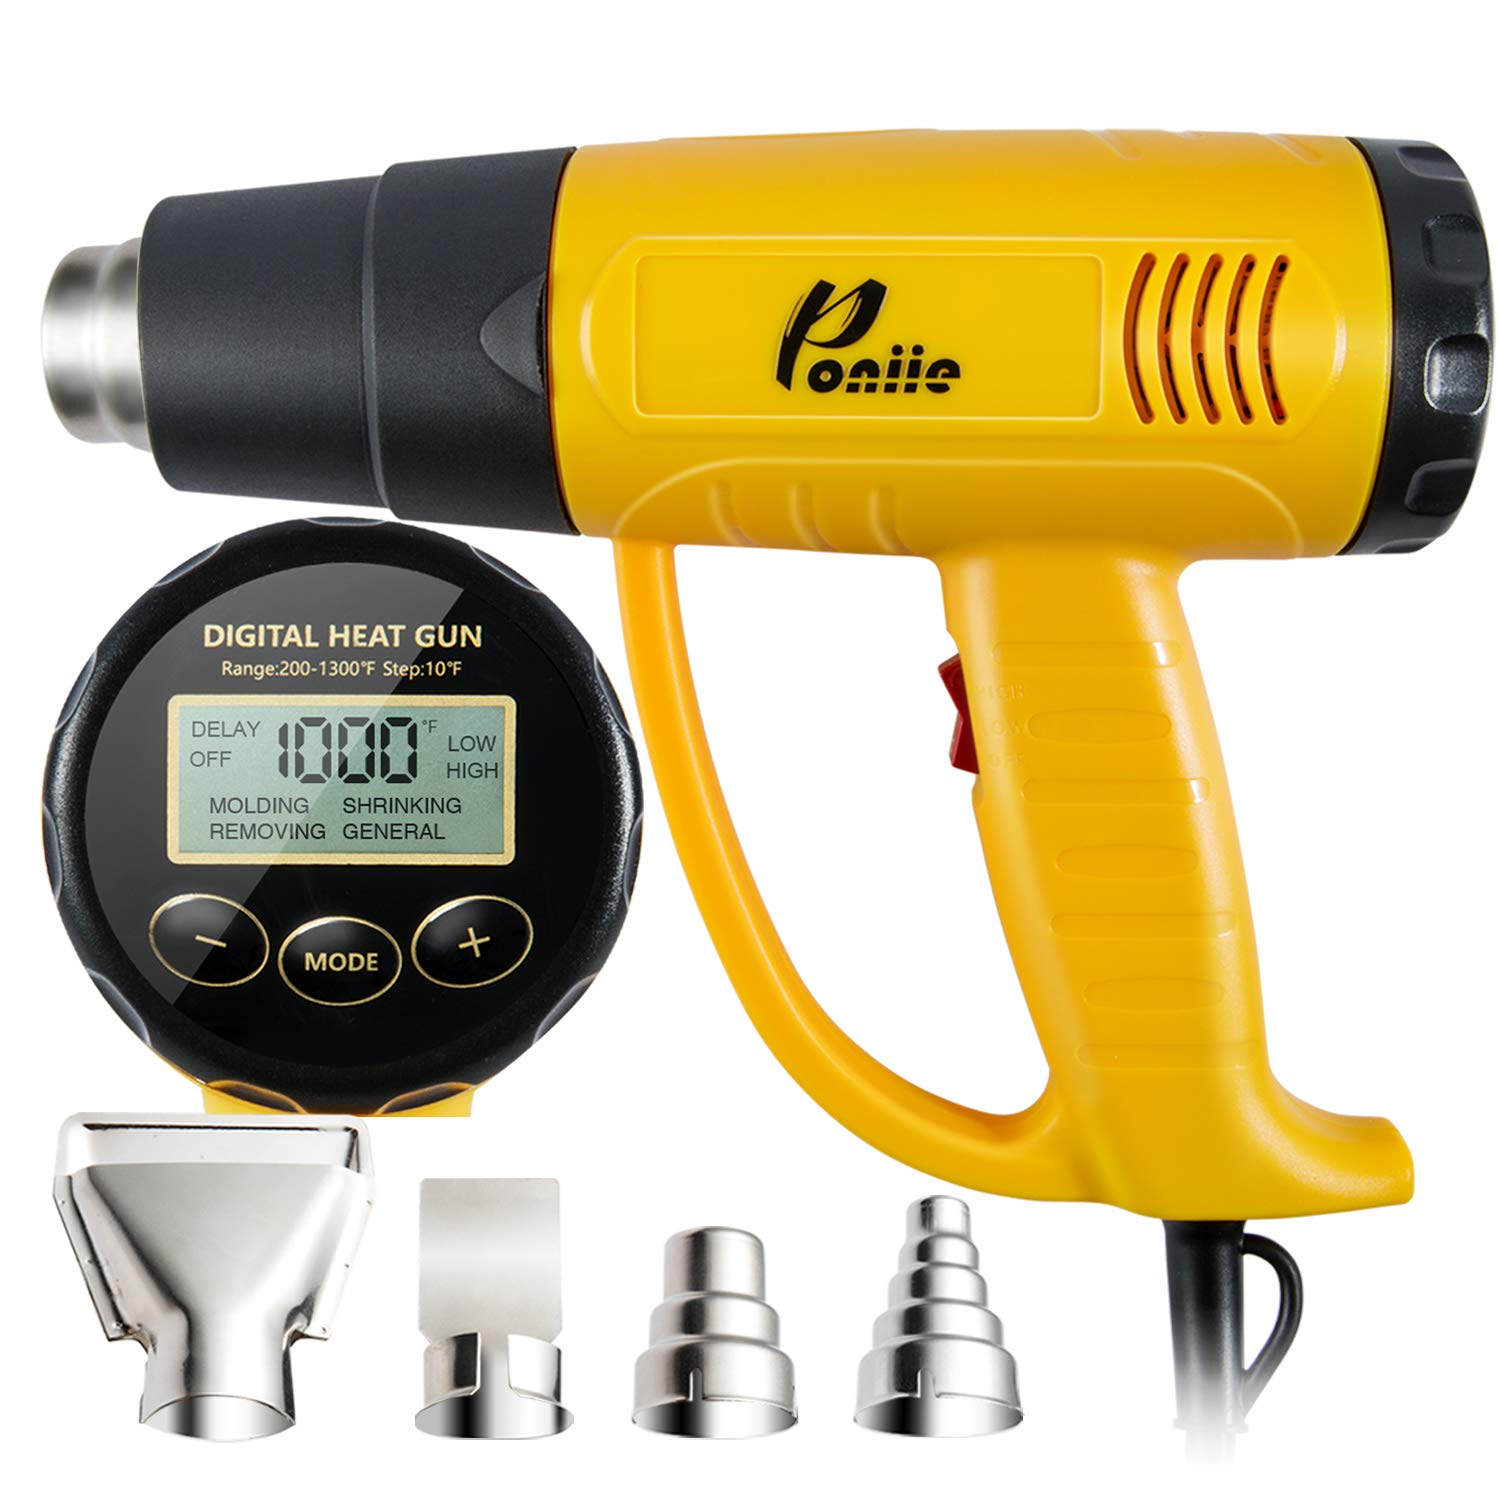 Poniie PN-H20 Digital Temperature Control LCD Heat Gun 1800W Heavy Duty Hot Air Gun 200~1300℉ for Crafts, Shrink Wrapping, Paint Remover